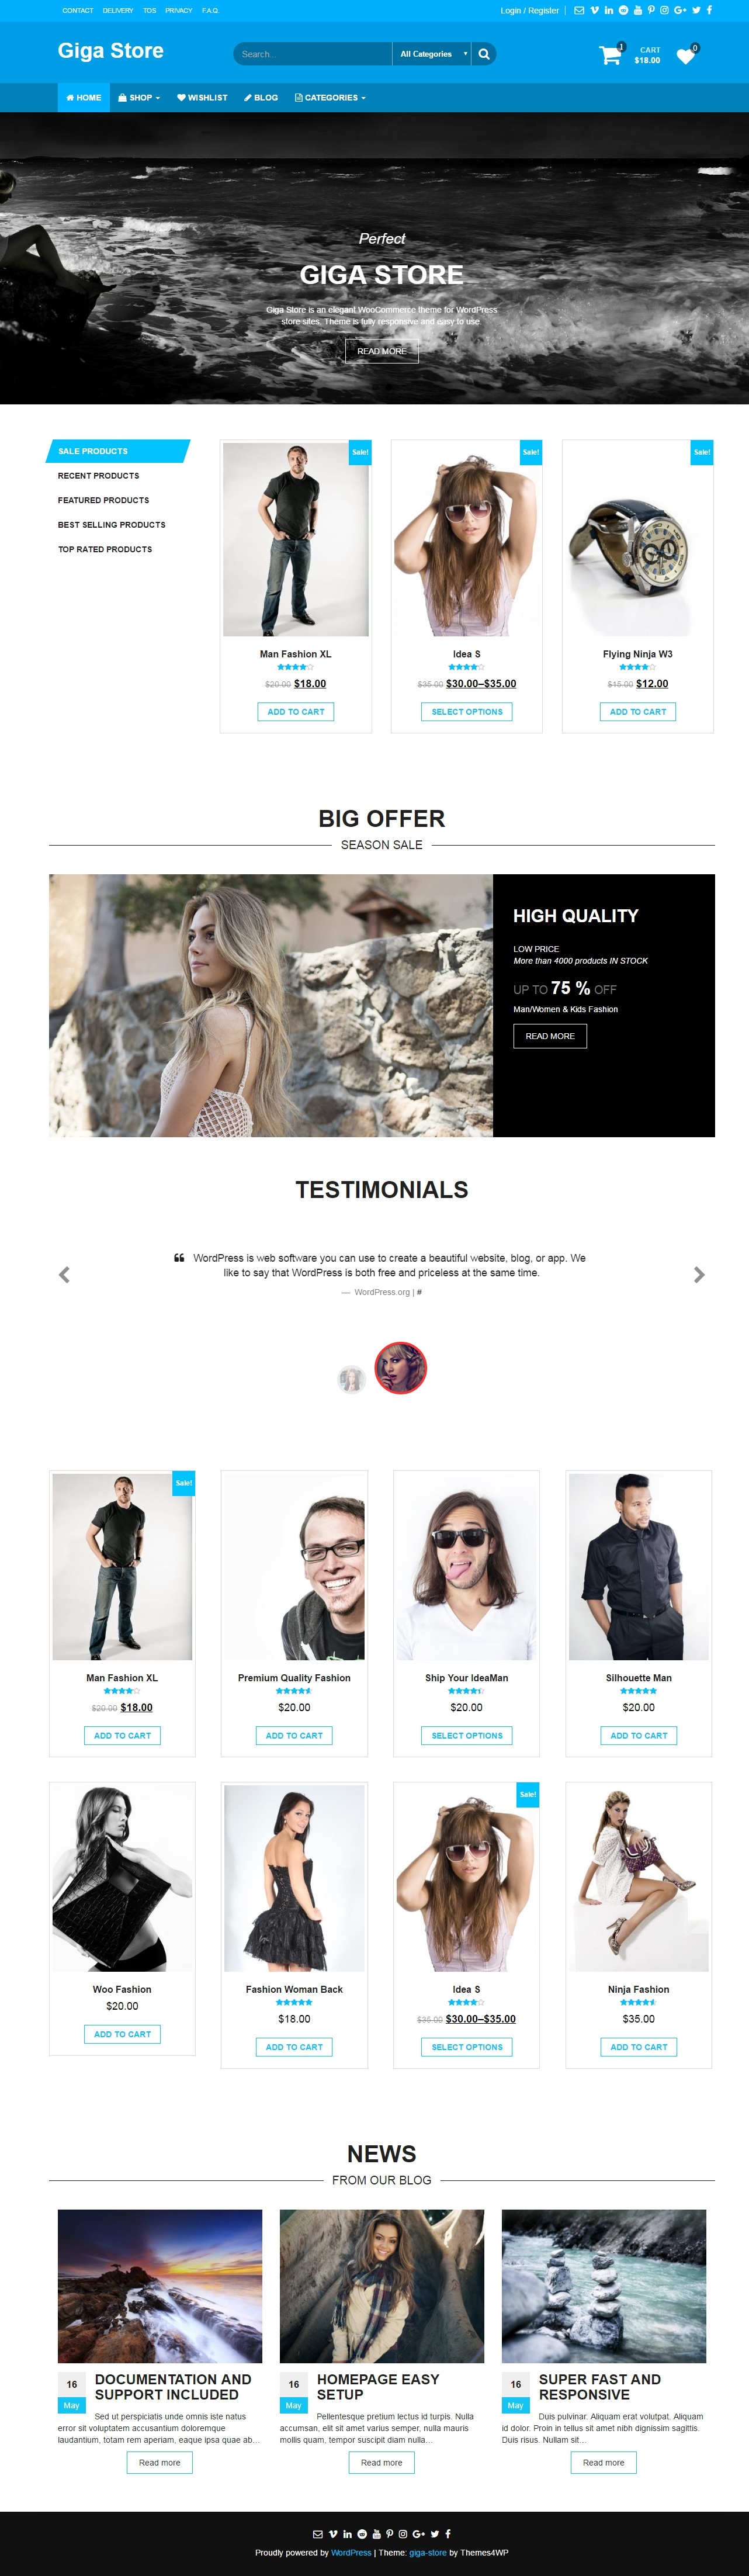 Giga Store – free woocommerce wordpress theme - theme preview